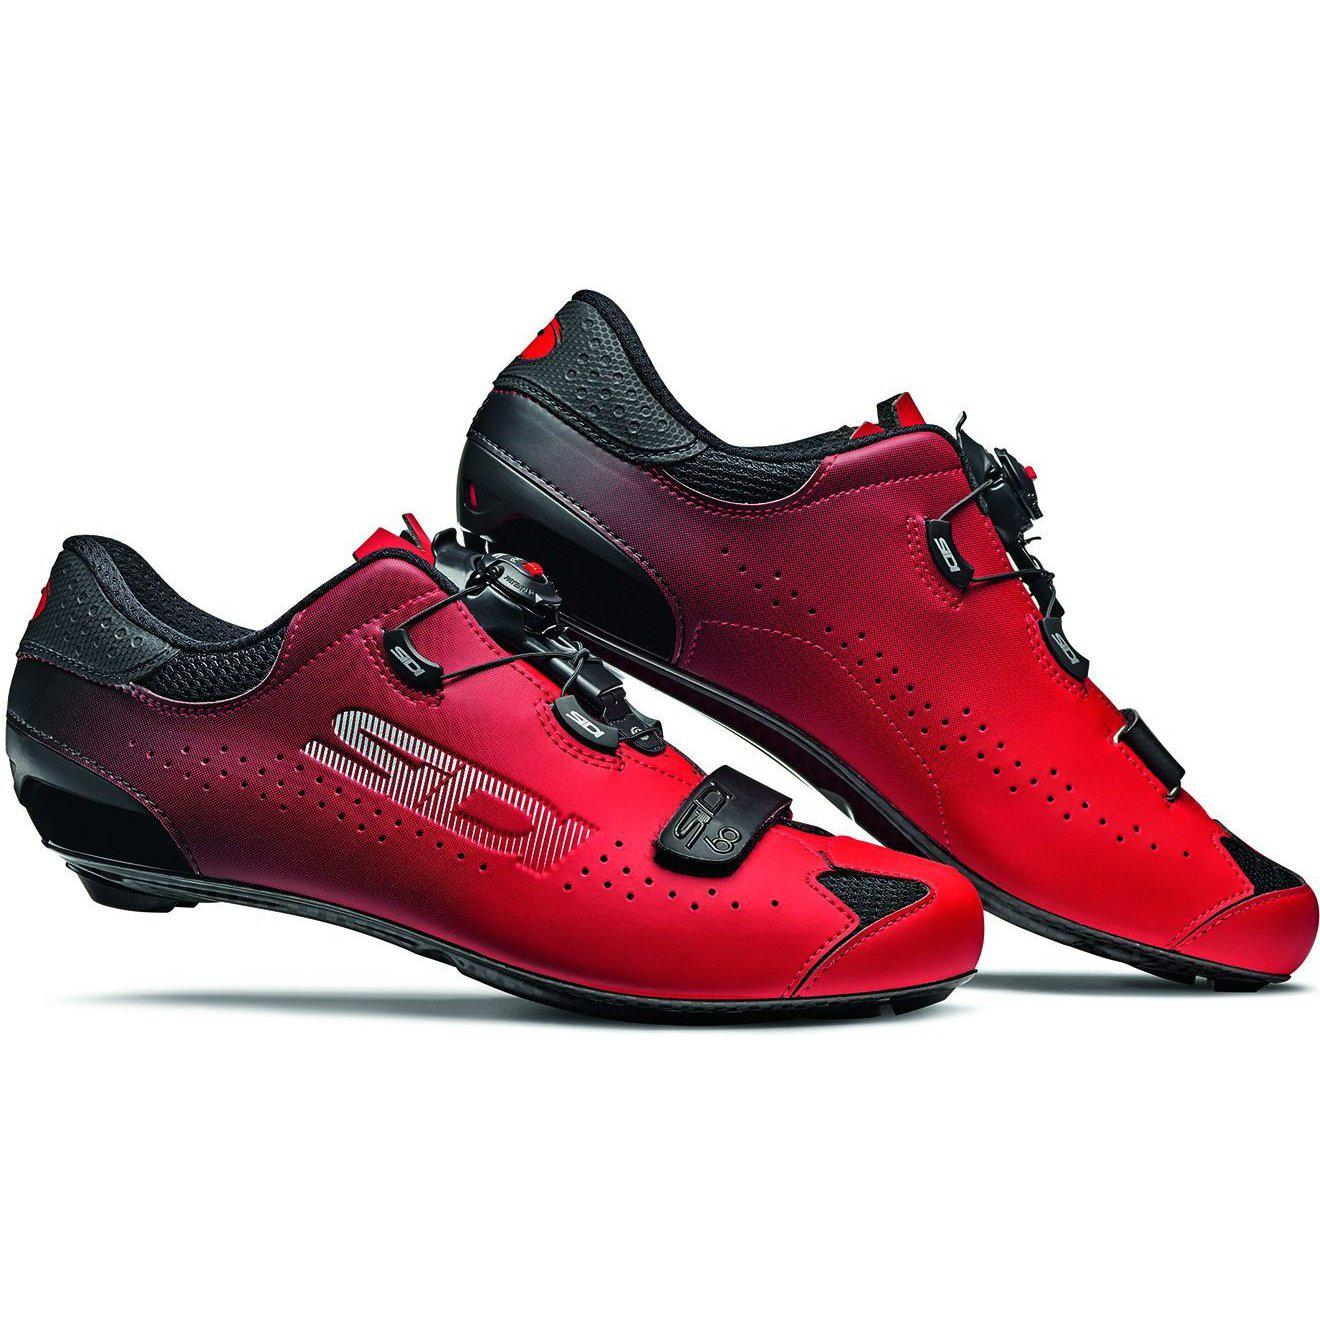 Sidi-Sidi Sixty Road Shoes-Black/Red-38-SISIXTYNERO38-saddleback-elite-performance-cycling